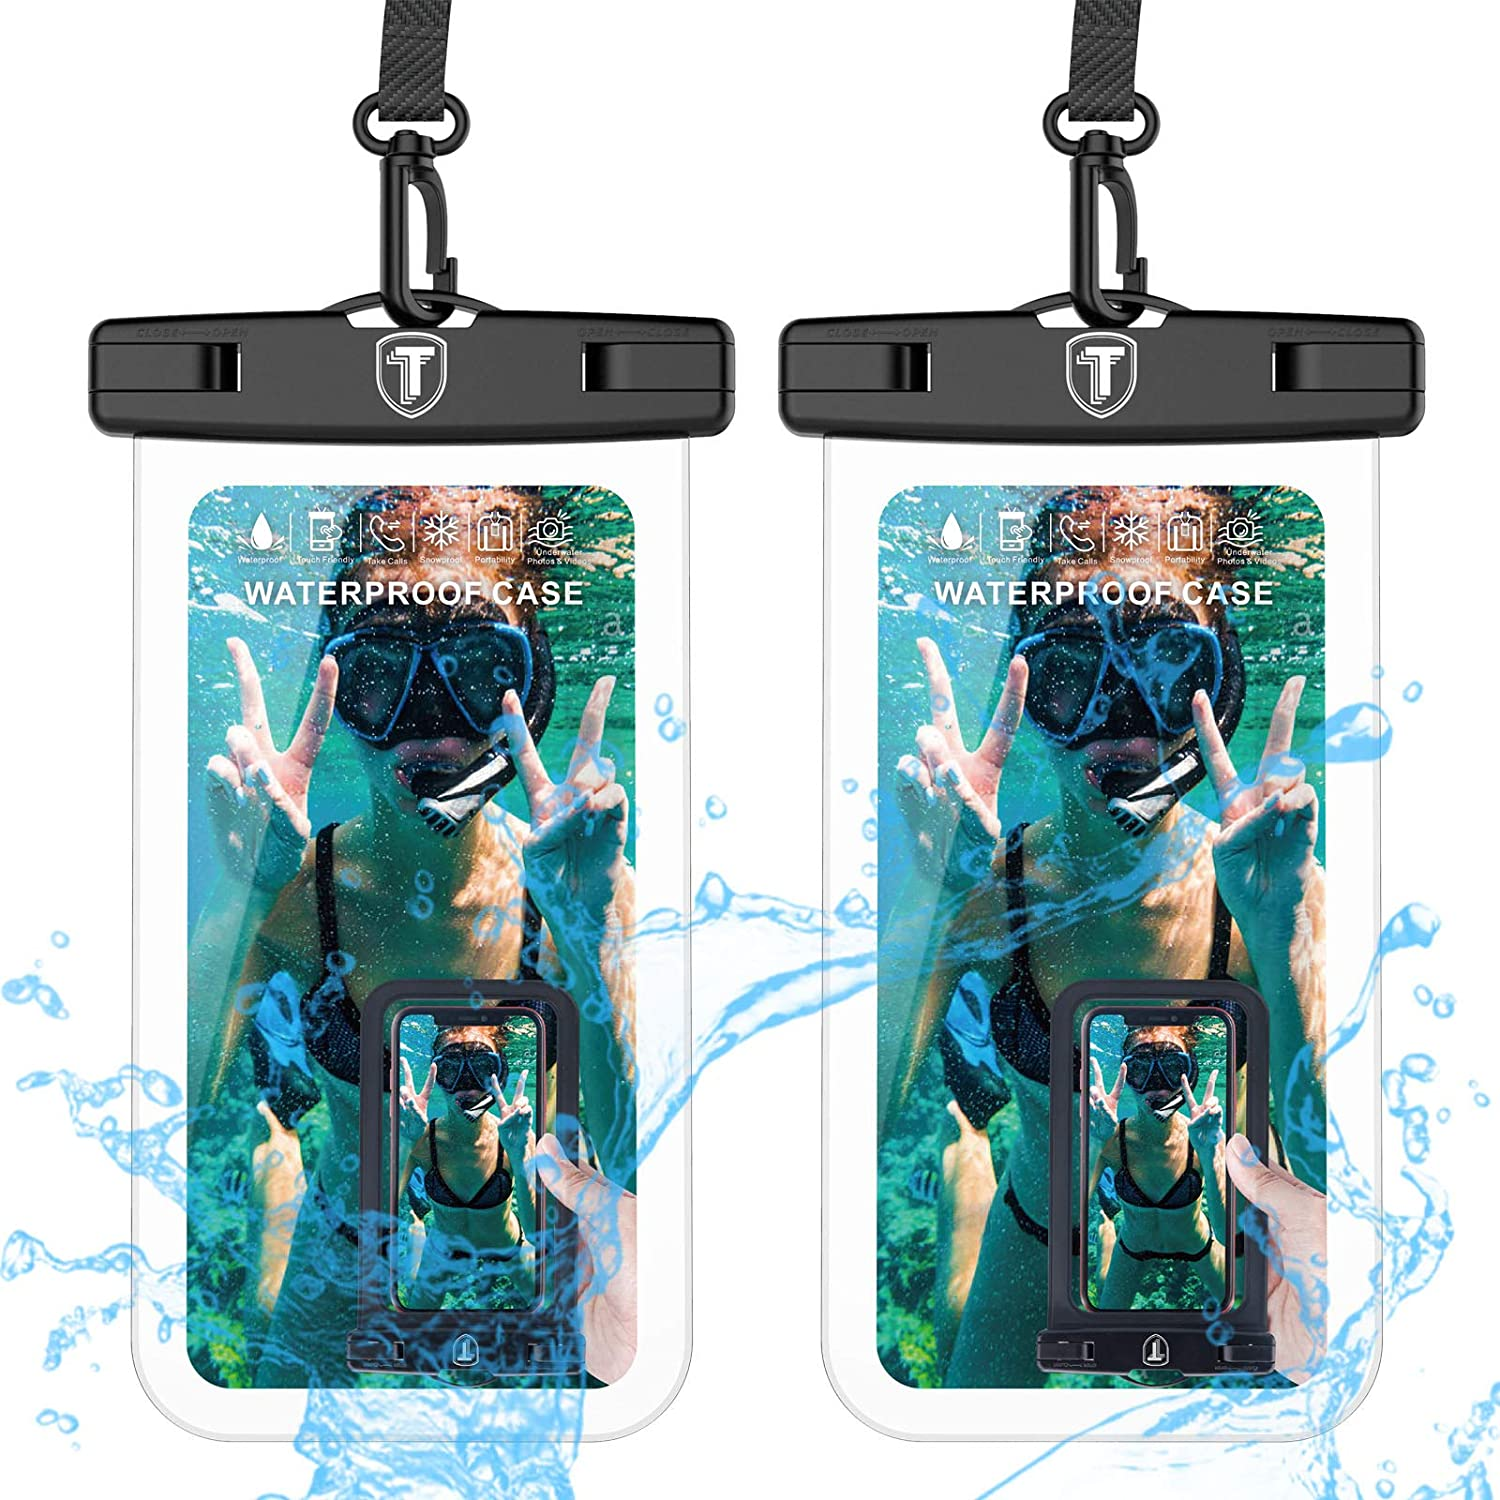 Tekcoo Universal Waterproof Case, 2-Pack IPX8 Waterproof Phone Clear Pouch Dry Bag Compatible iPhone 11 Pro/Xs Max//XR/X/8 Plus, Galaxy S10/S10+/S9/Note 10,10+,9, Moto G7,Pixel 3A & Phones Up to 6.5""